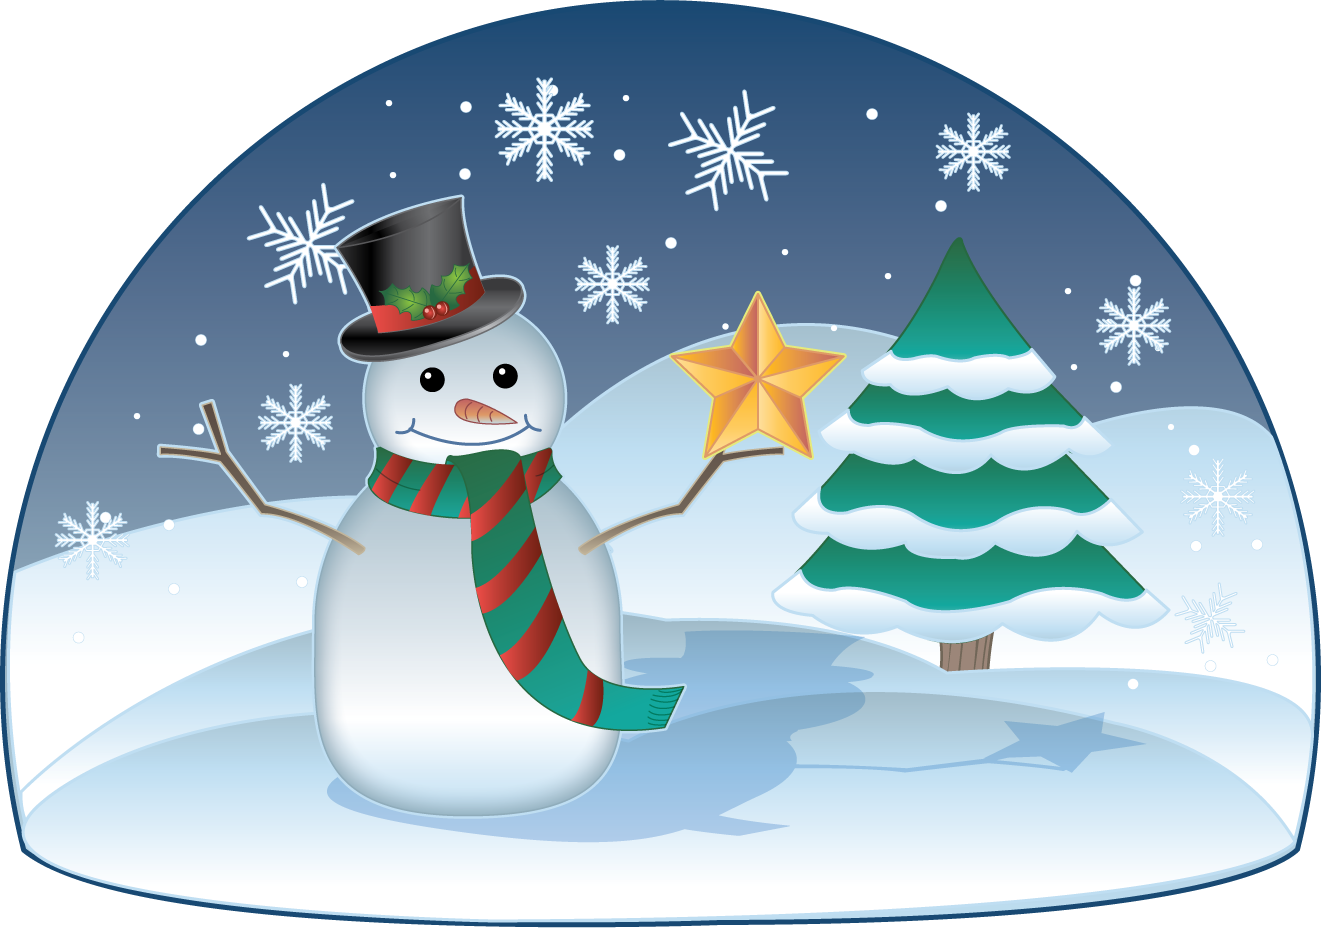 Free Clip Art Holiday Clip Art Christmas-Free Clip Art Holiday Clip Art Christmas Snowman In Winter-0